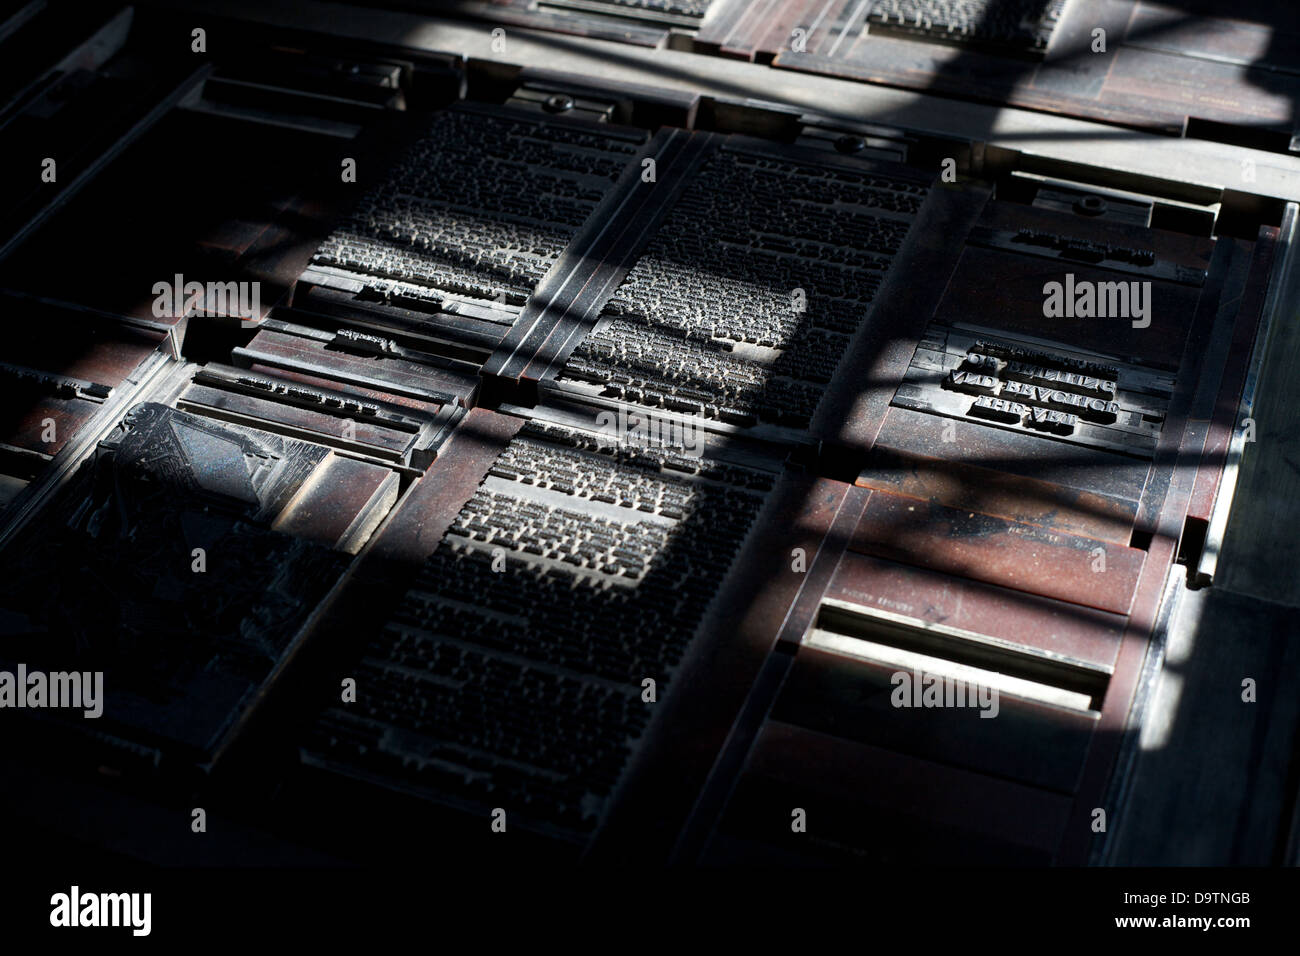 A close up shot of a vintage letterpress printing type. - Stock Image